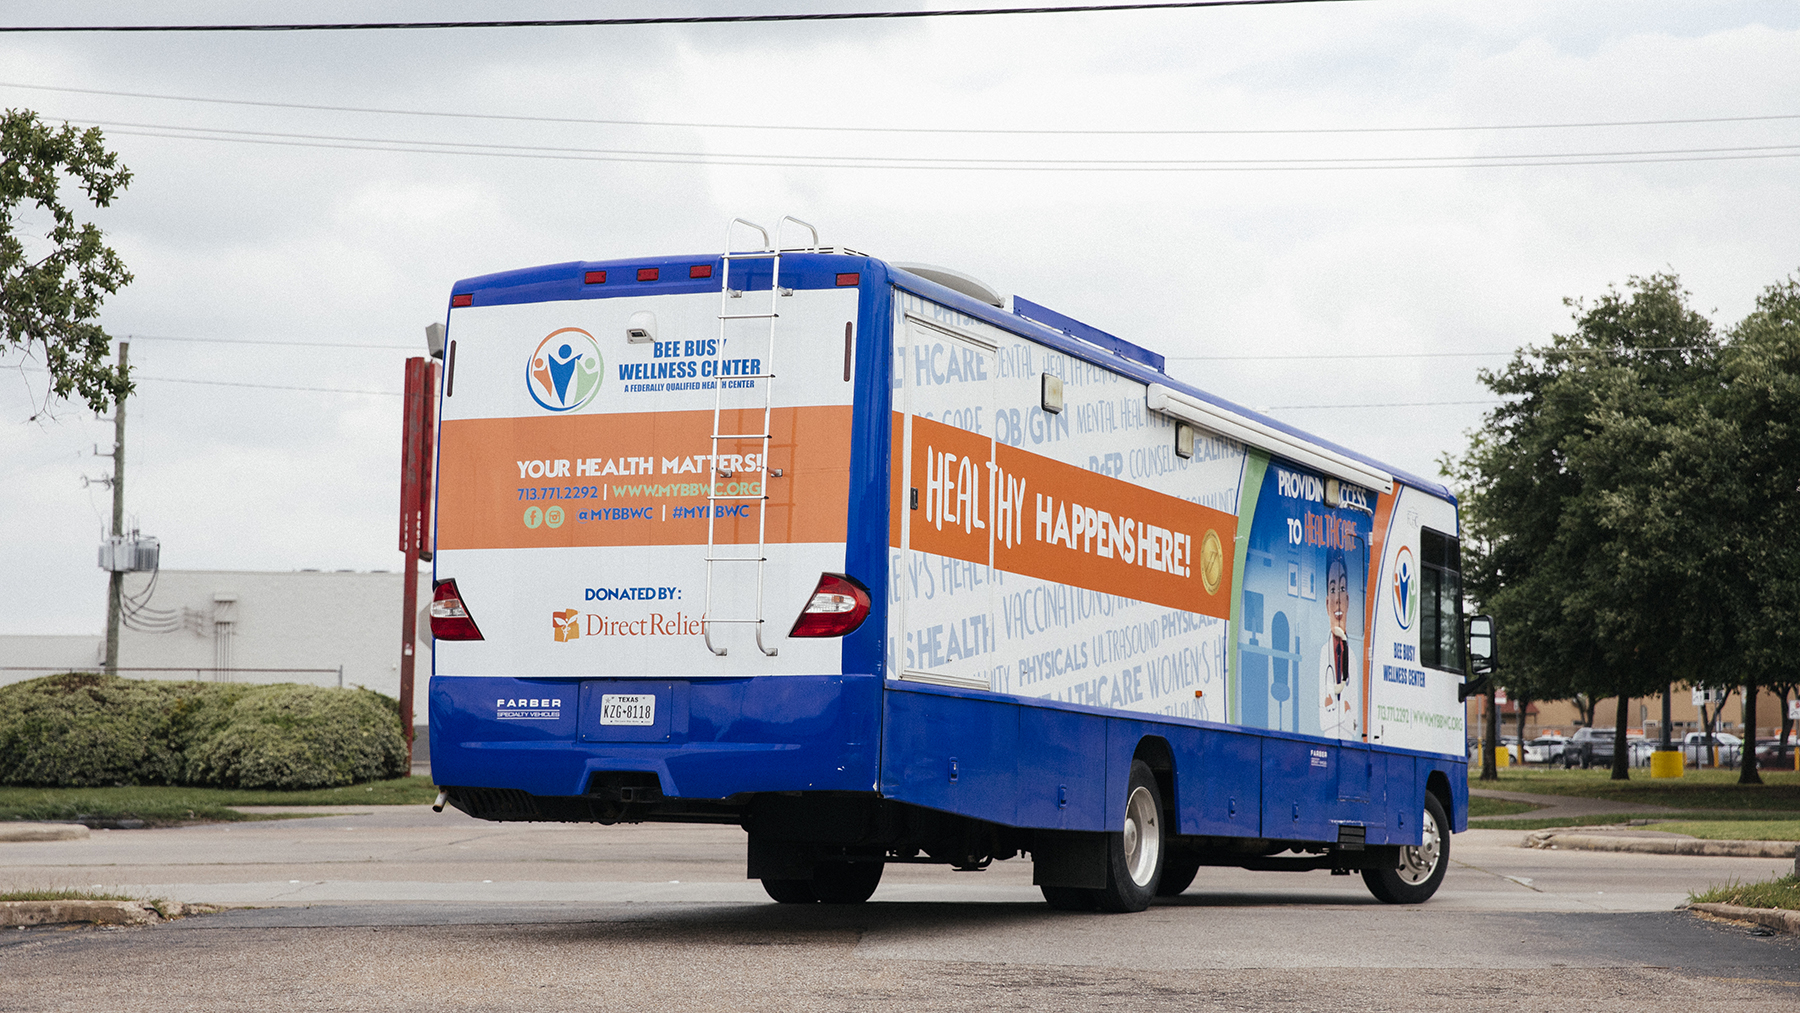 Busy Bee Wellness Center's mobile unit on the move. Direct Relief provided the Federally Qualified Health Center, based in Houston, with funding for a new unit after Hurricane Harvey. (Photo by Donnie Hedden for Direct Relief)